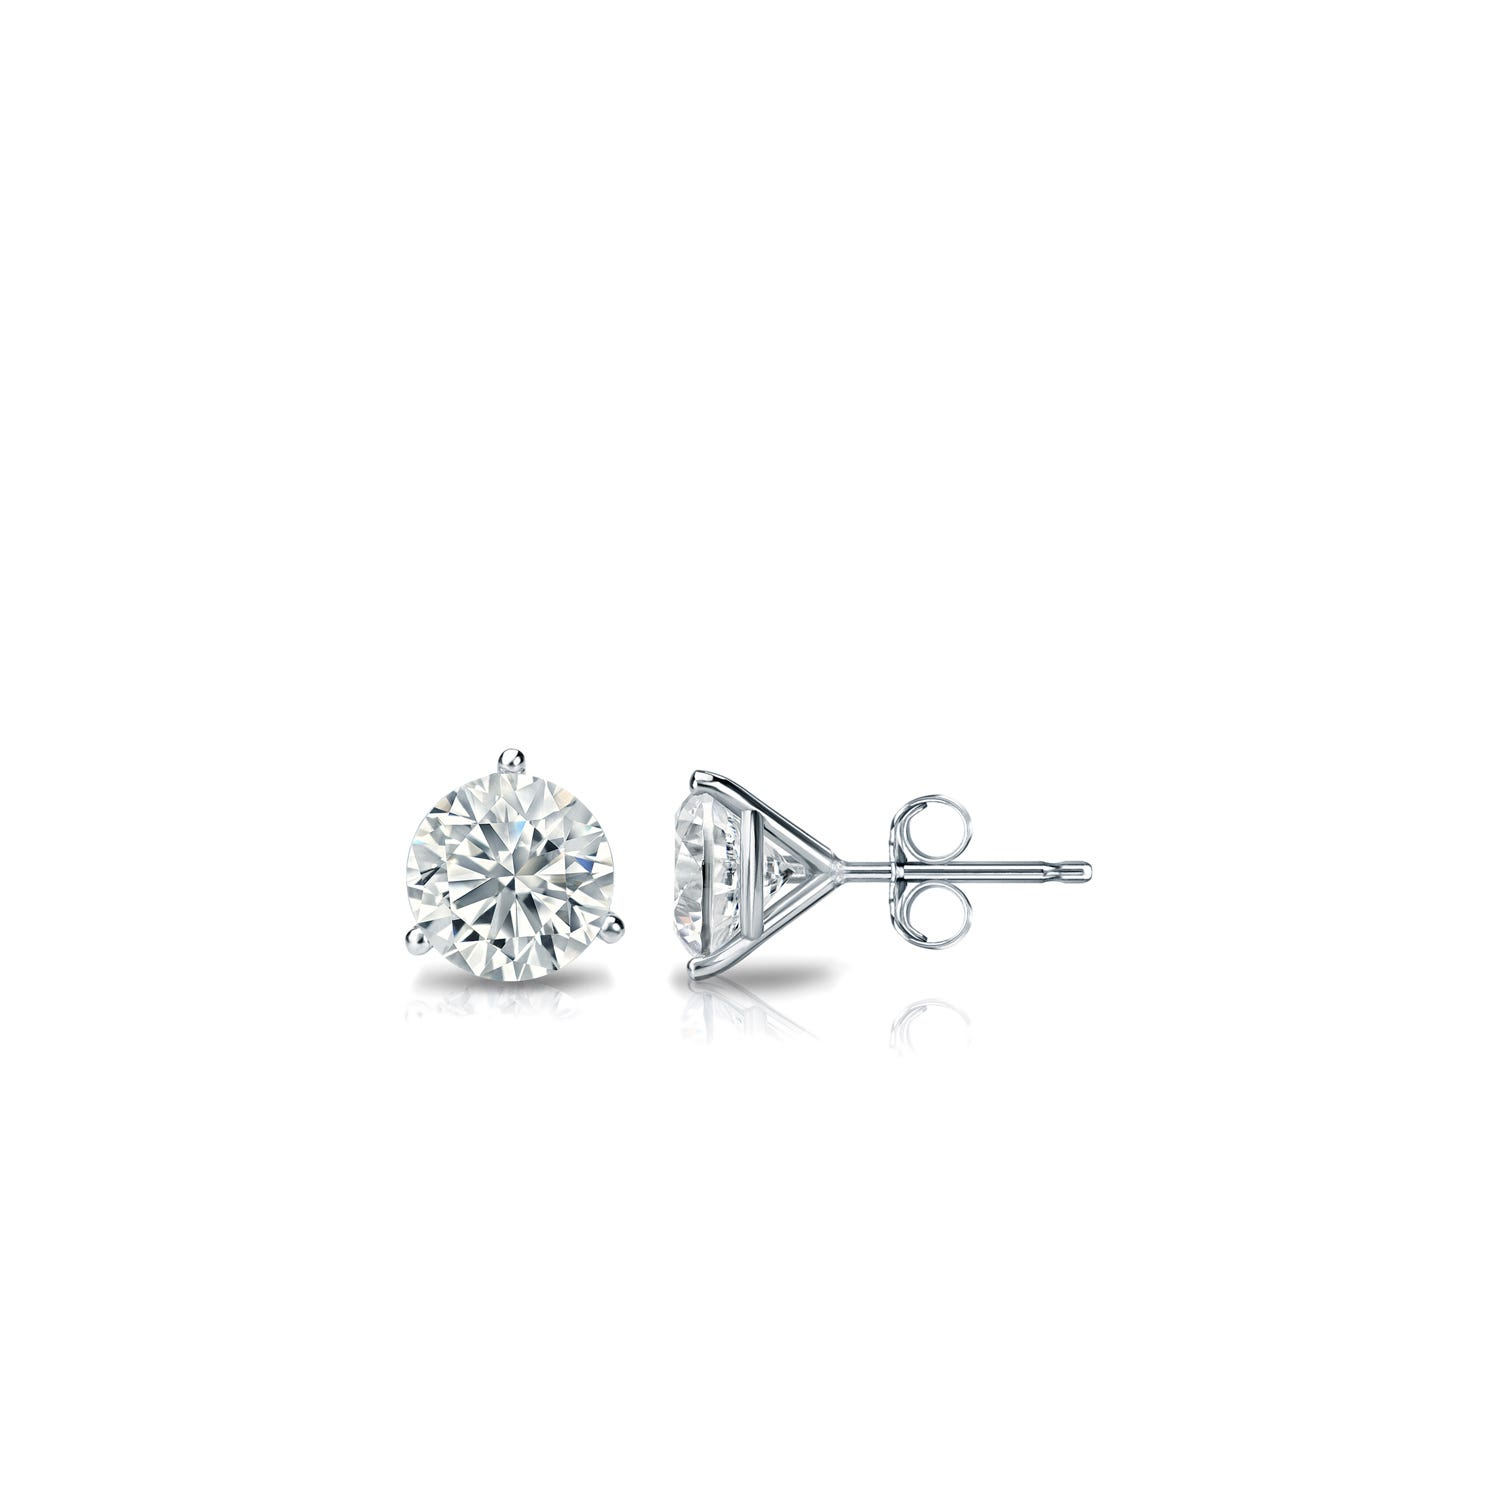 1/5 CTTW Round Diamond Solitaire Stud Earrings IJ I2 in Platinum 3-Prong Setting